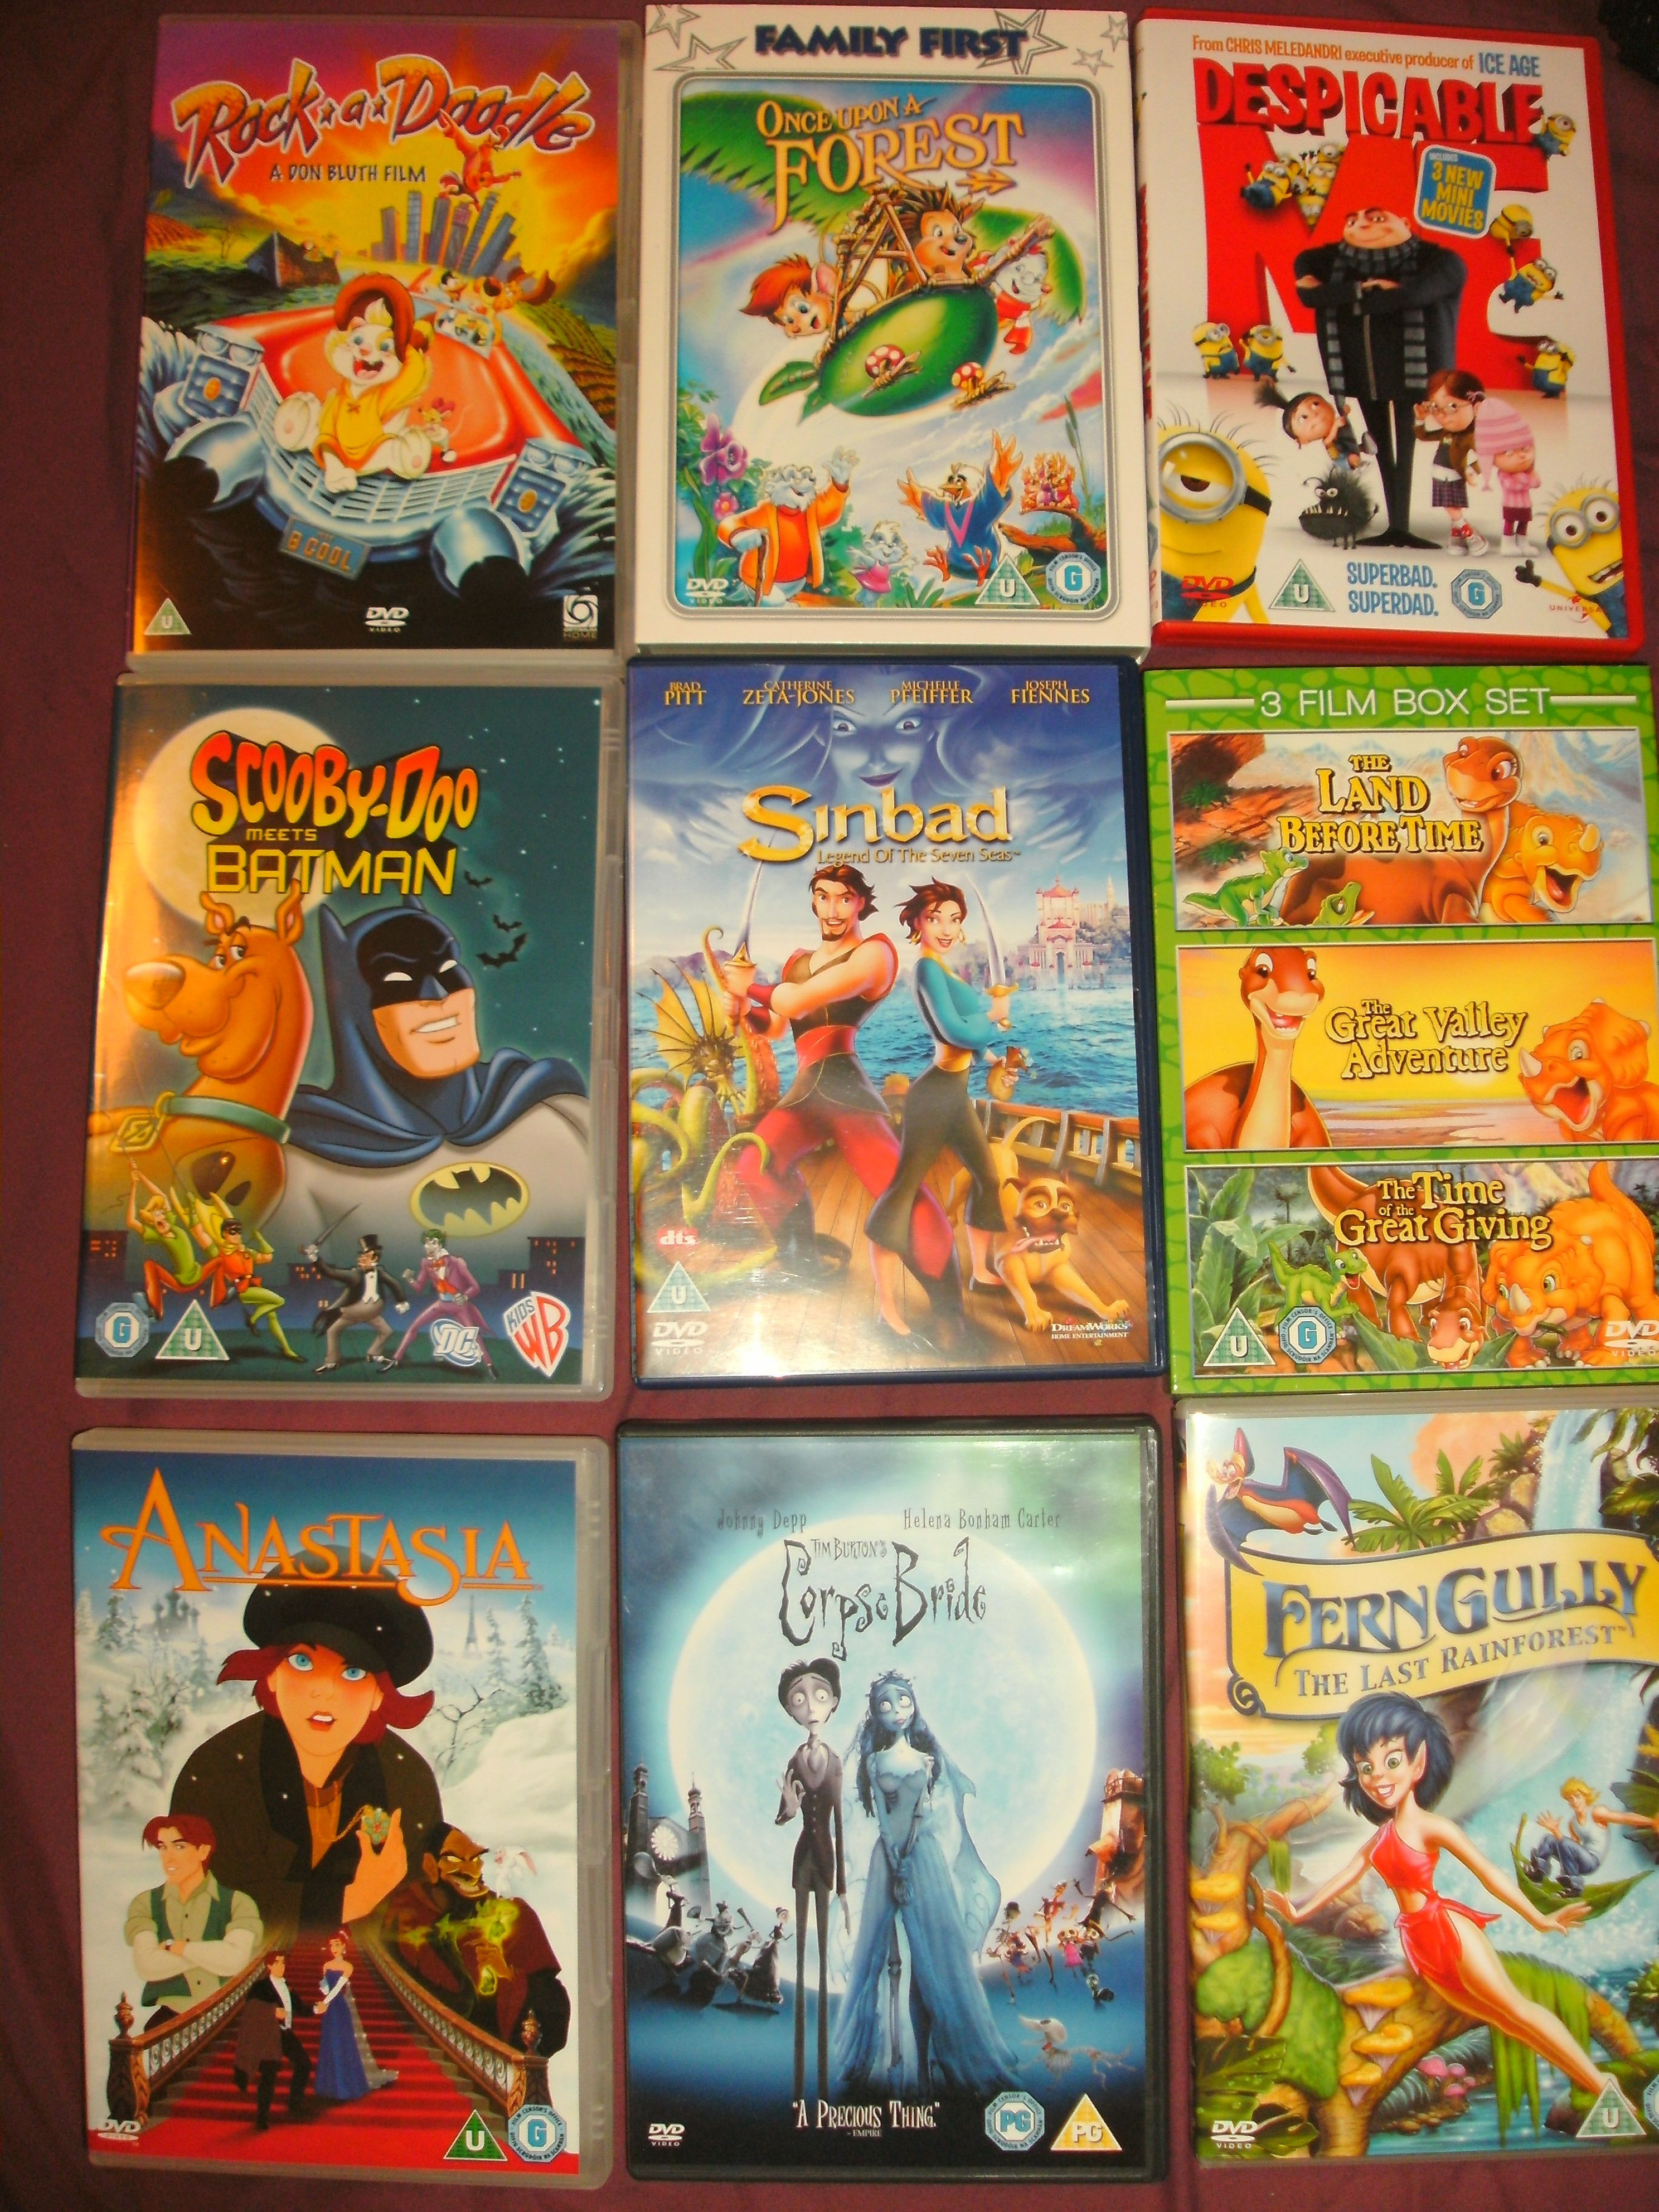 Some Non Disney Animated Films Rock A Doodle Once Upon A Forest Despicable Me Scooby Doo Disney Animated Films Disney Cartoon Movies Disney Animated Movies